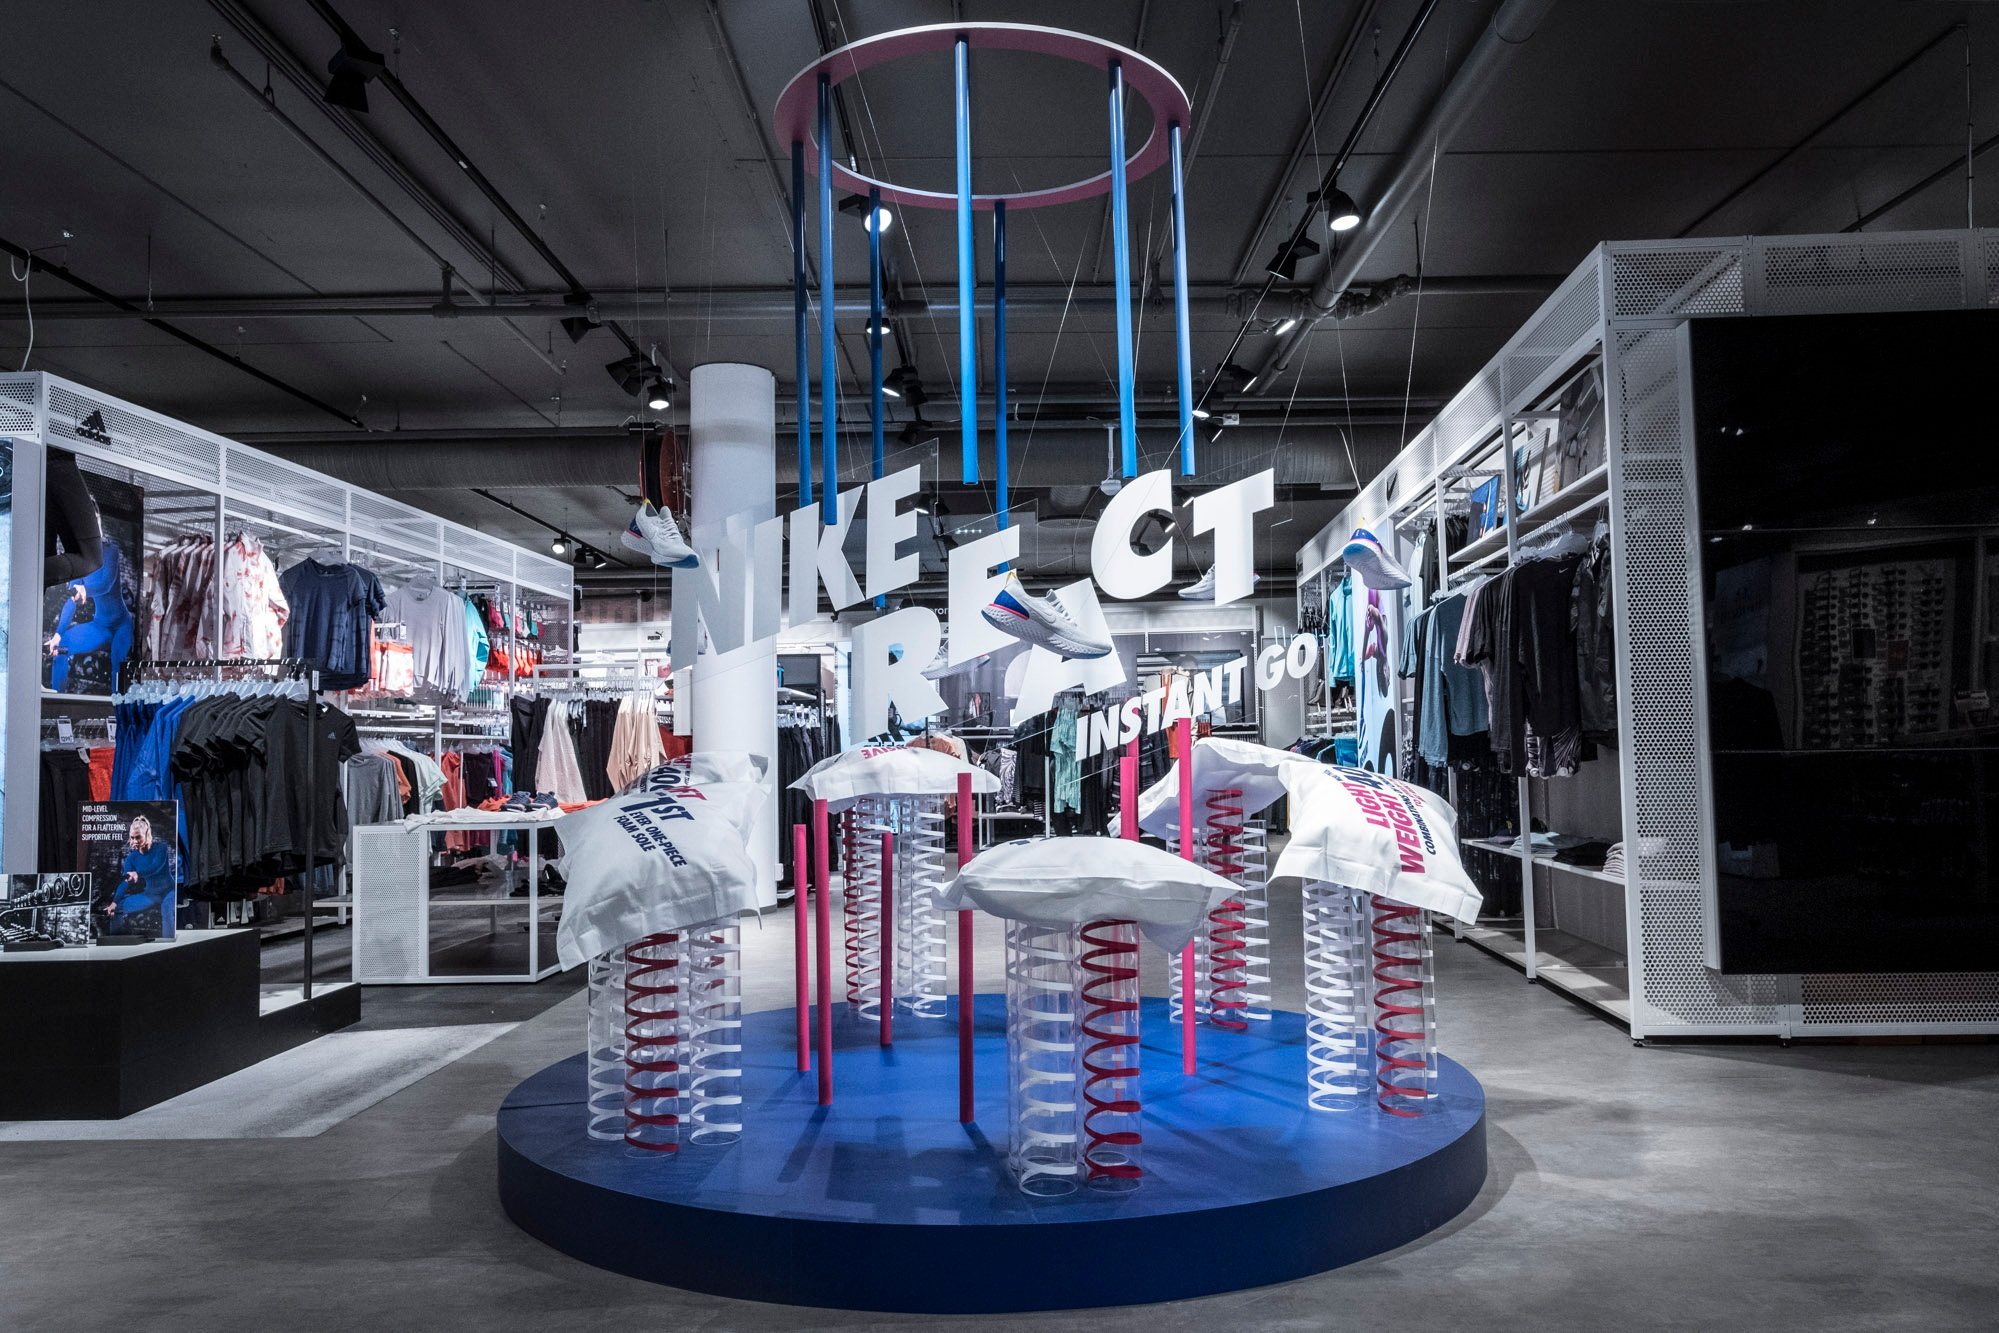 SHOP-IN-SHOP - We create impactful extension of campaigns, brand identity and store concepts into the multibrand arena. We manage distributor contacts and implement cohesive campaign installations throughout Europe.